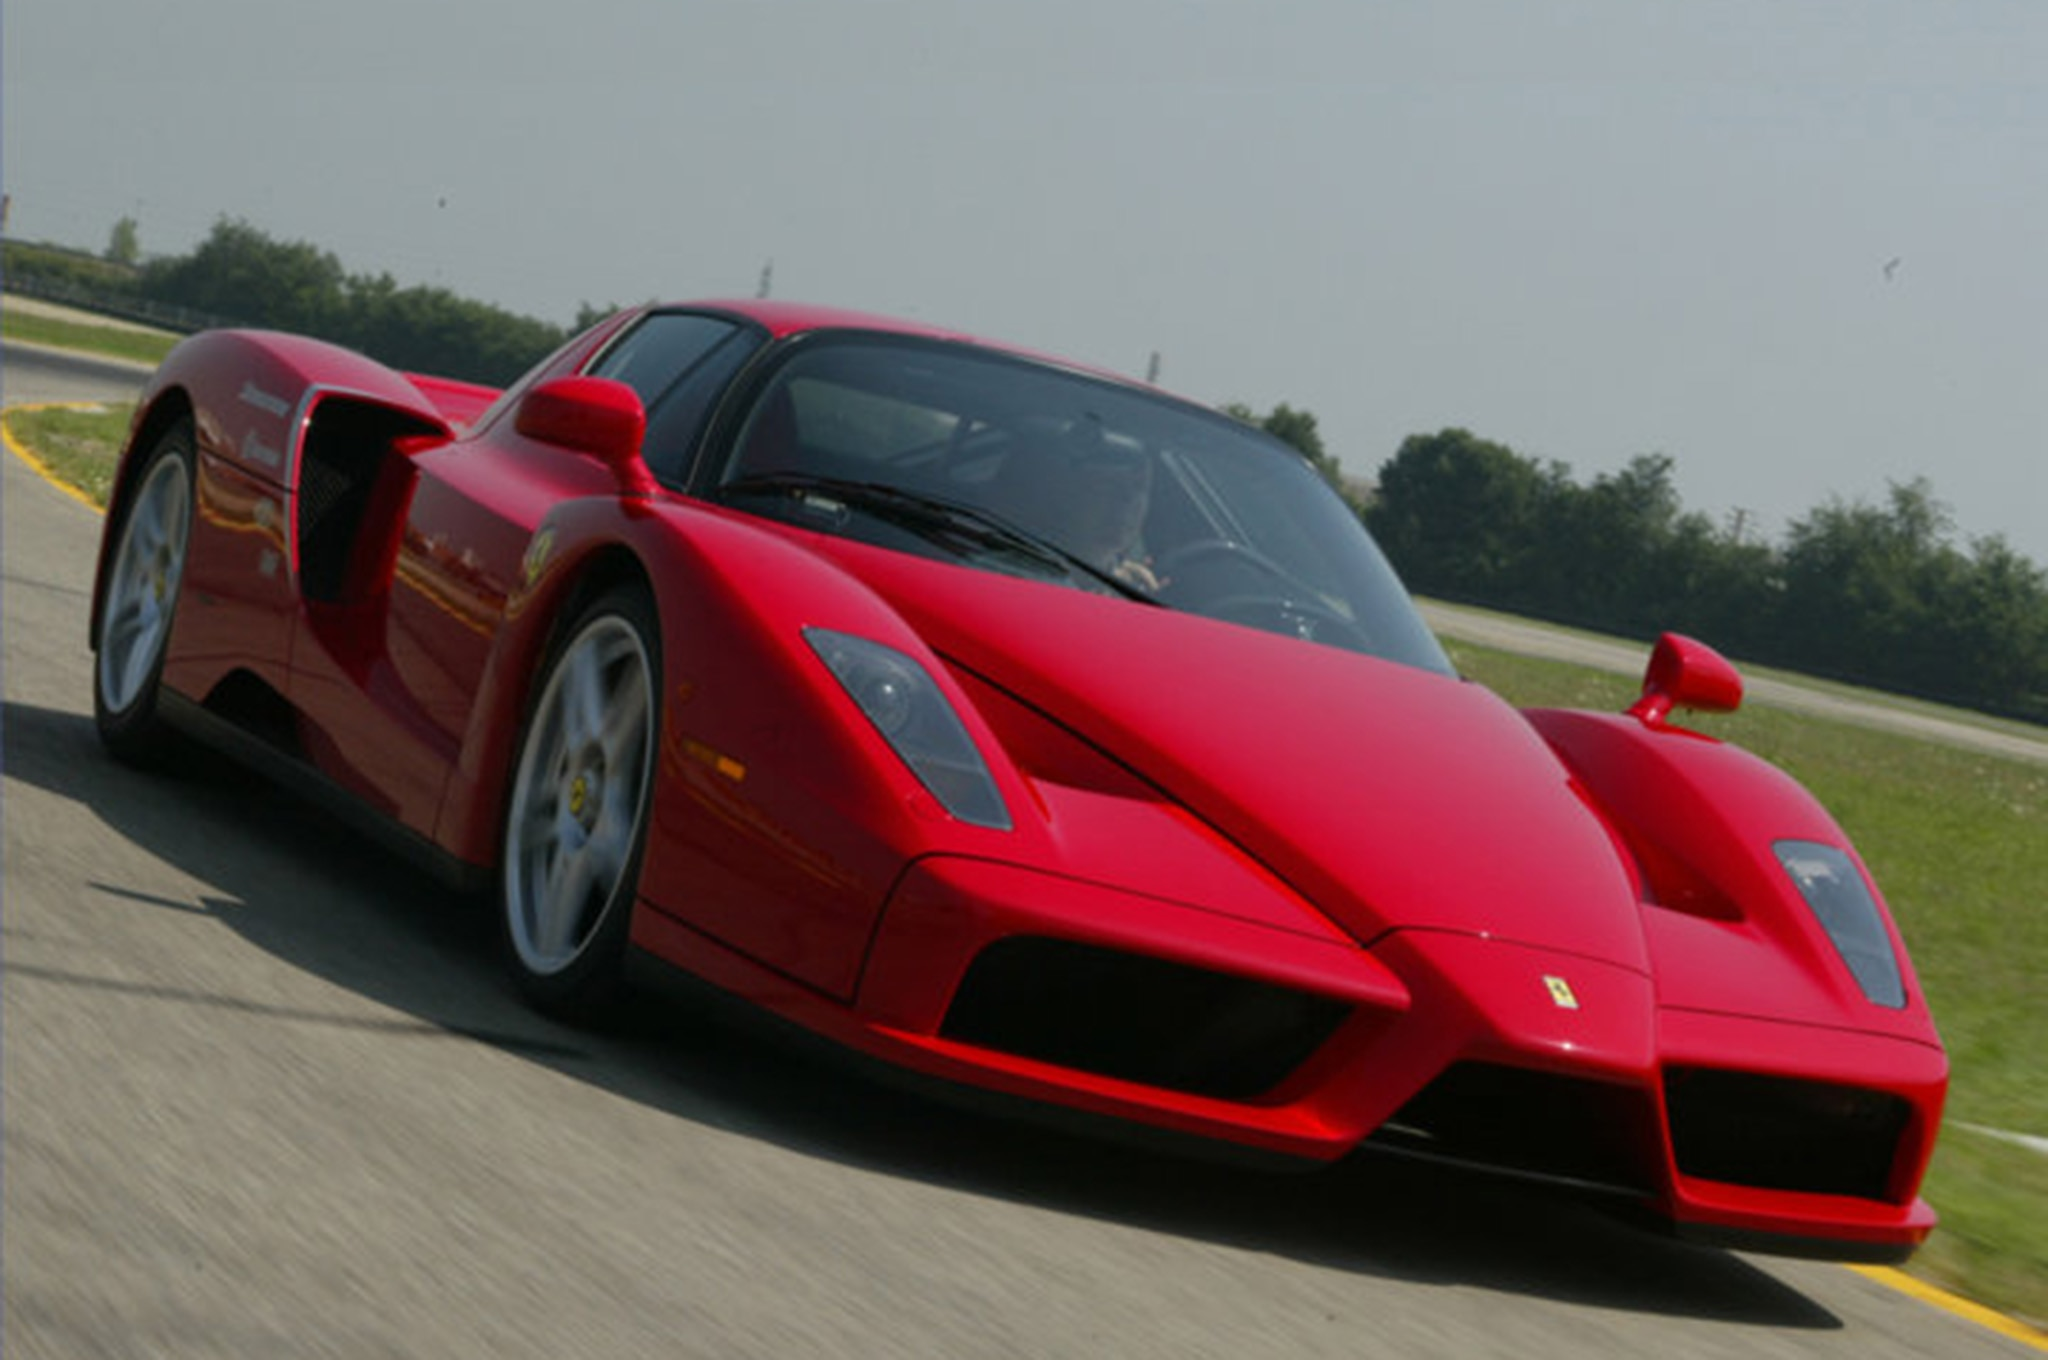 The GTO, A Road Going Version Of The 599XX Racing Car, Produced 661 Hp. It  Also Lapped Fiorano Faster Than This Next Ferrari.